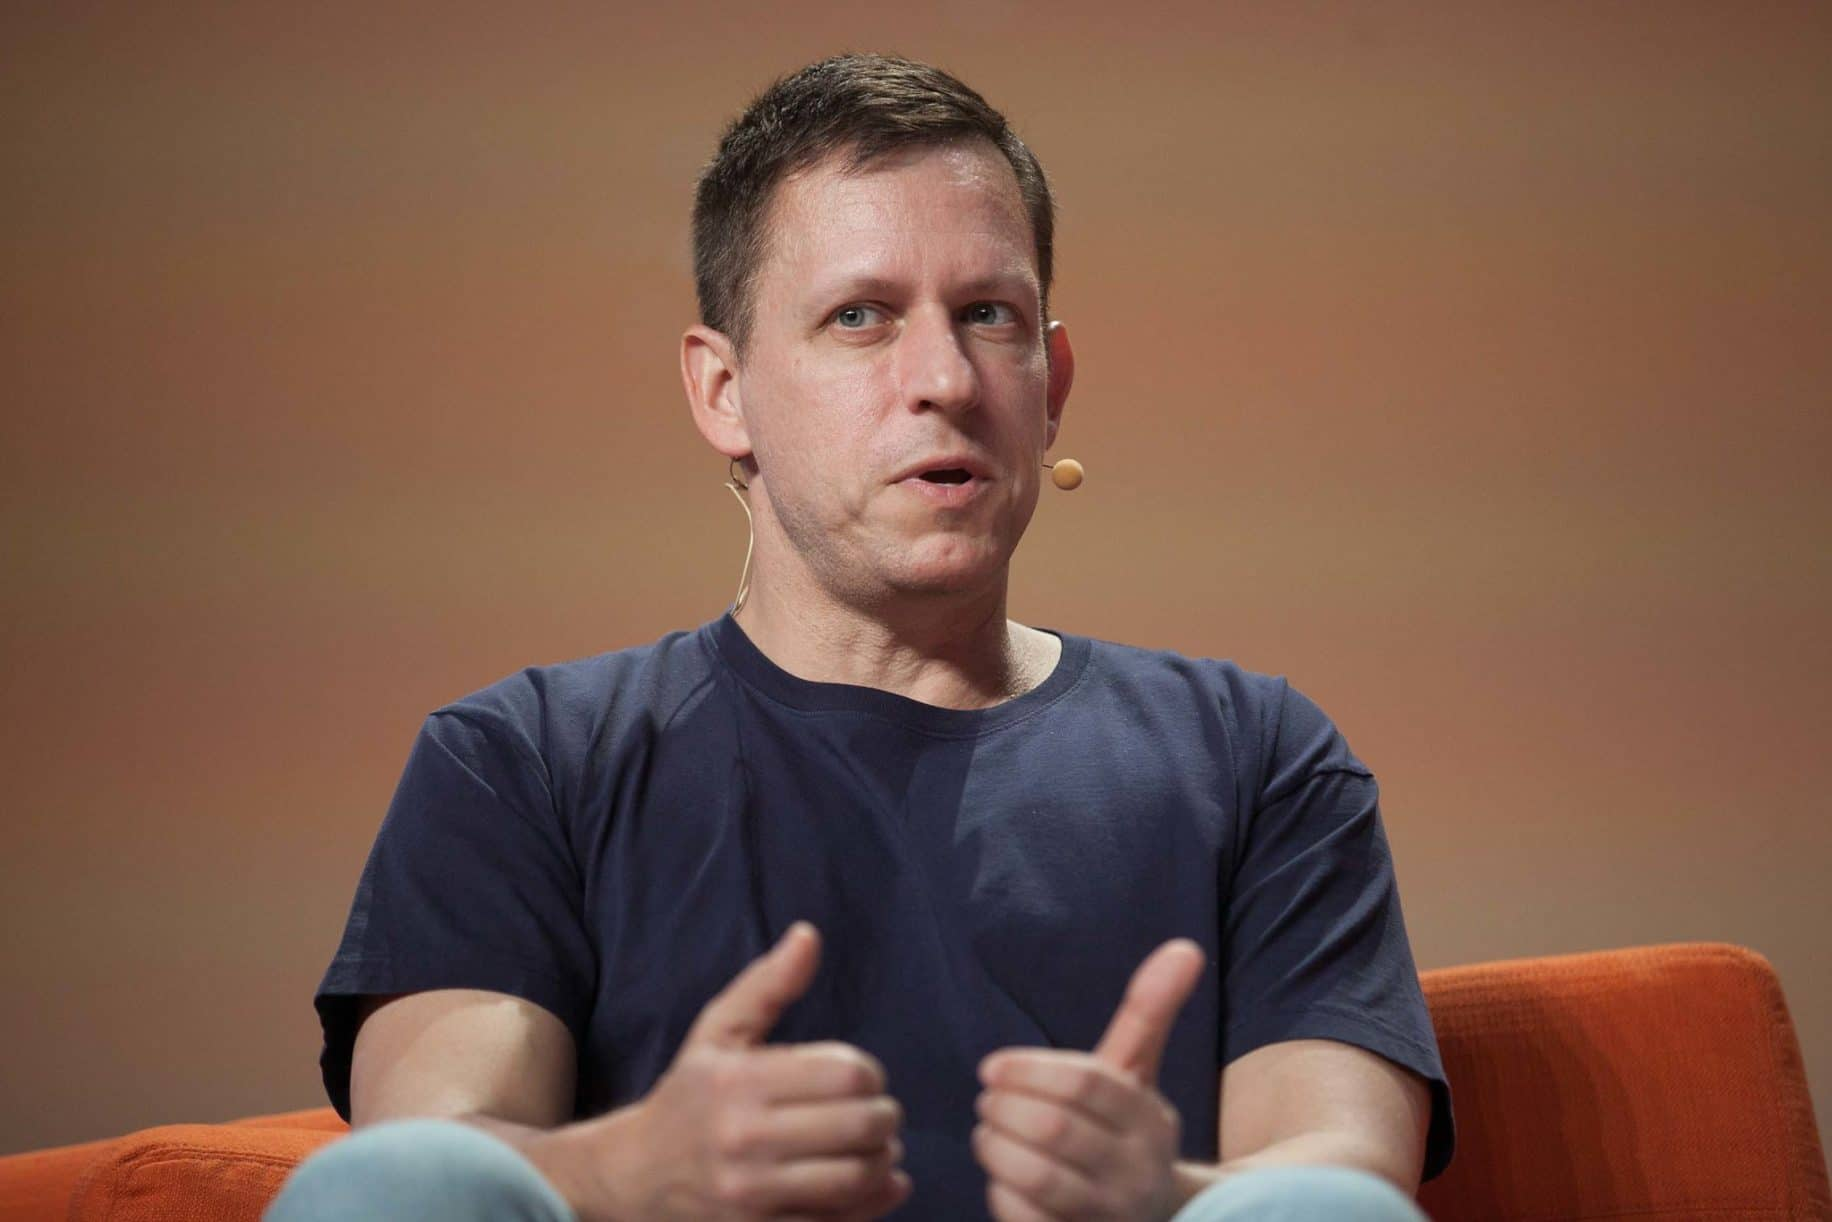 Billionaire Thiel: Google 'seemingly committing treason' with Chinese military; calls for federal investigation into spies and more | American Military News